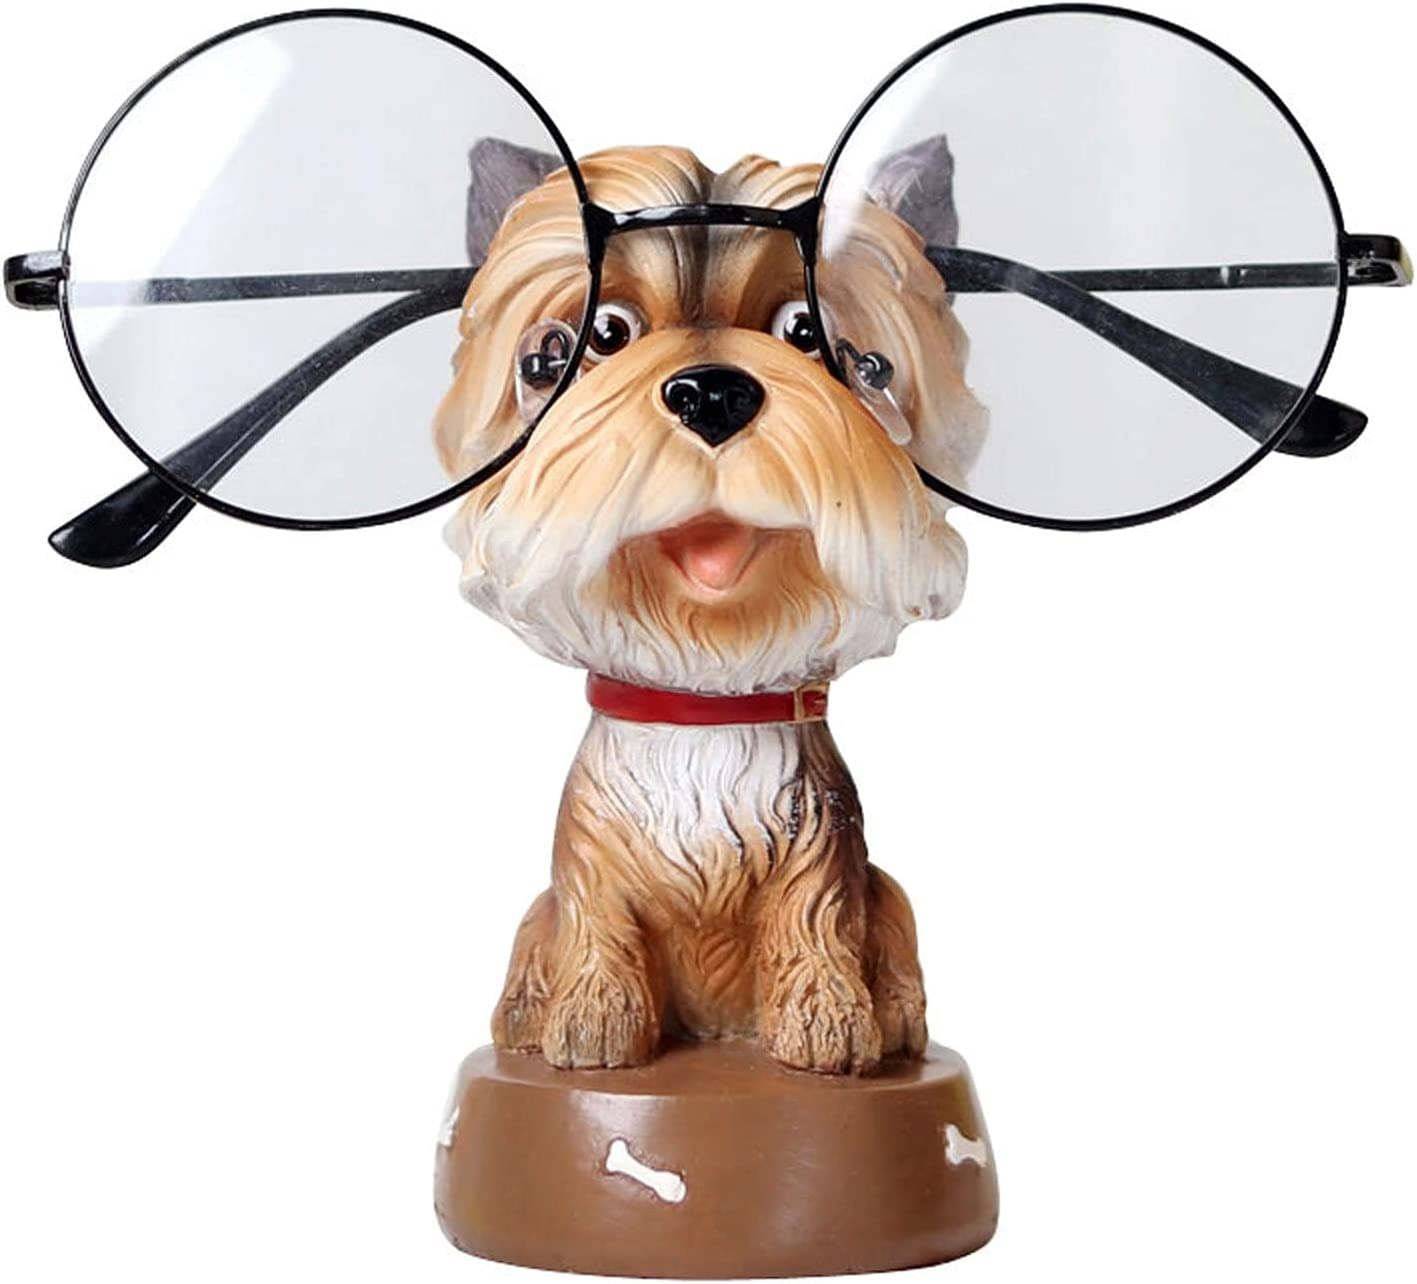 CJshop Sunglasses Rack Japan Maker New Holder Animal Stand Cute NEW before selling ☆ Glasses